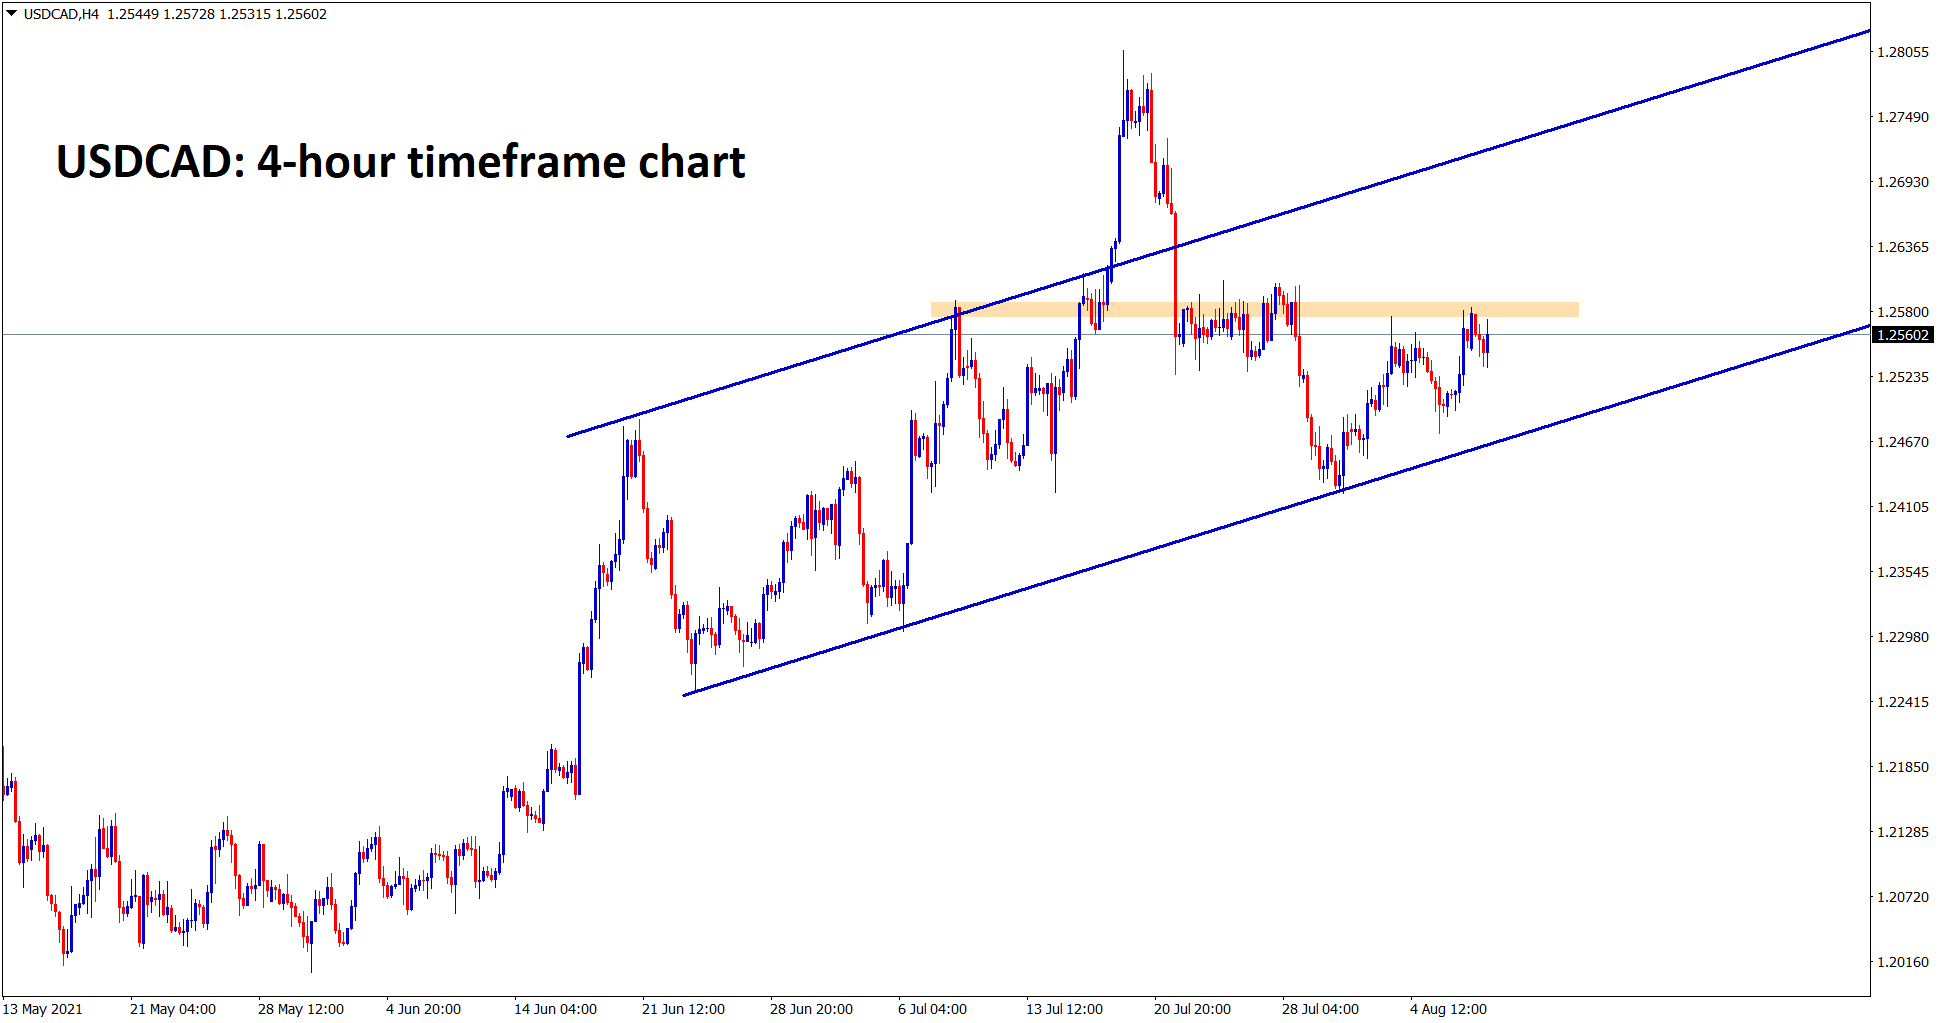 USDCAD is trying to break the resistance level in an uptrend range